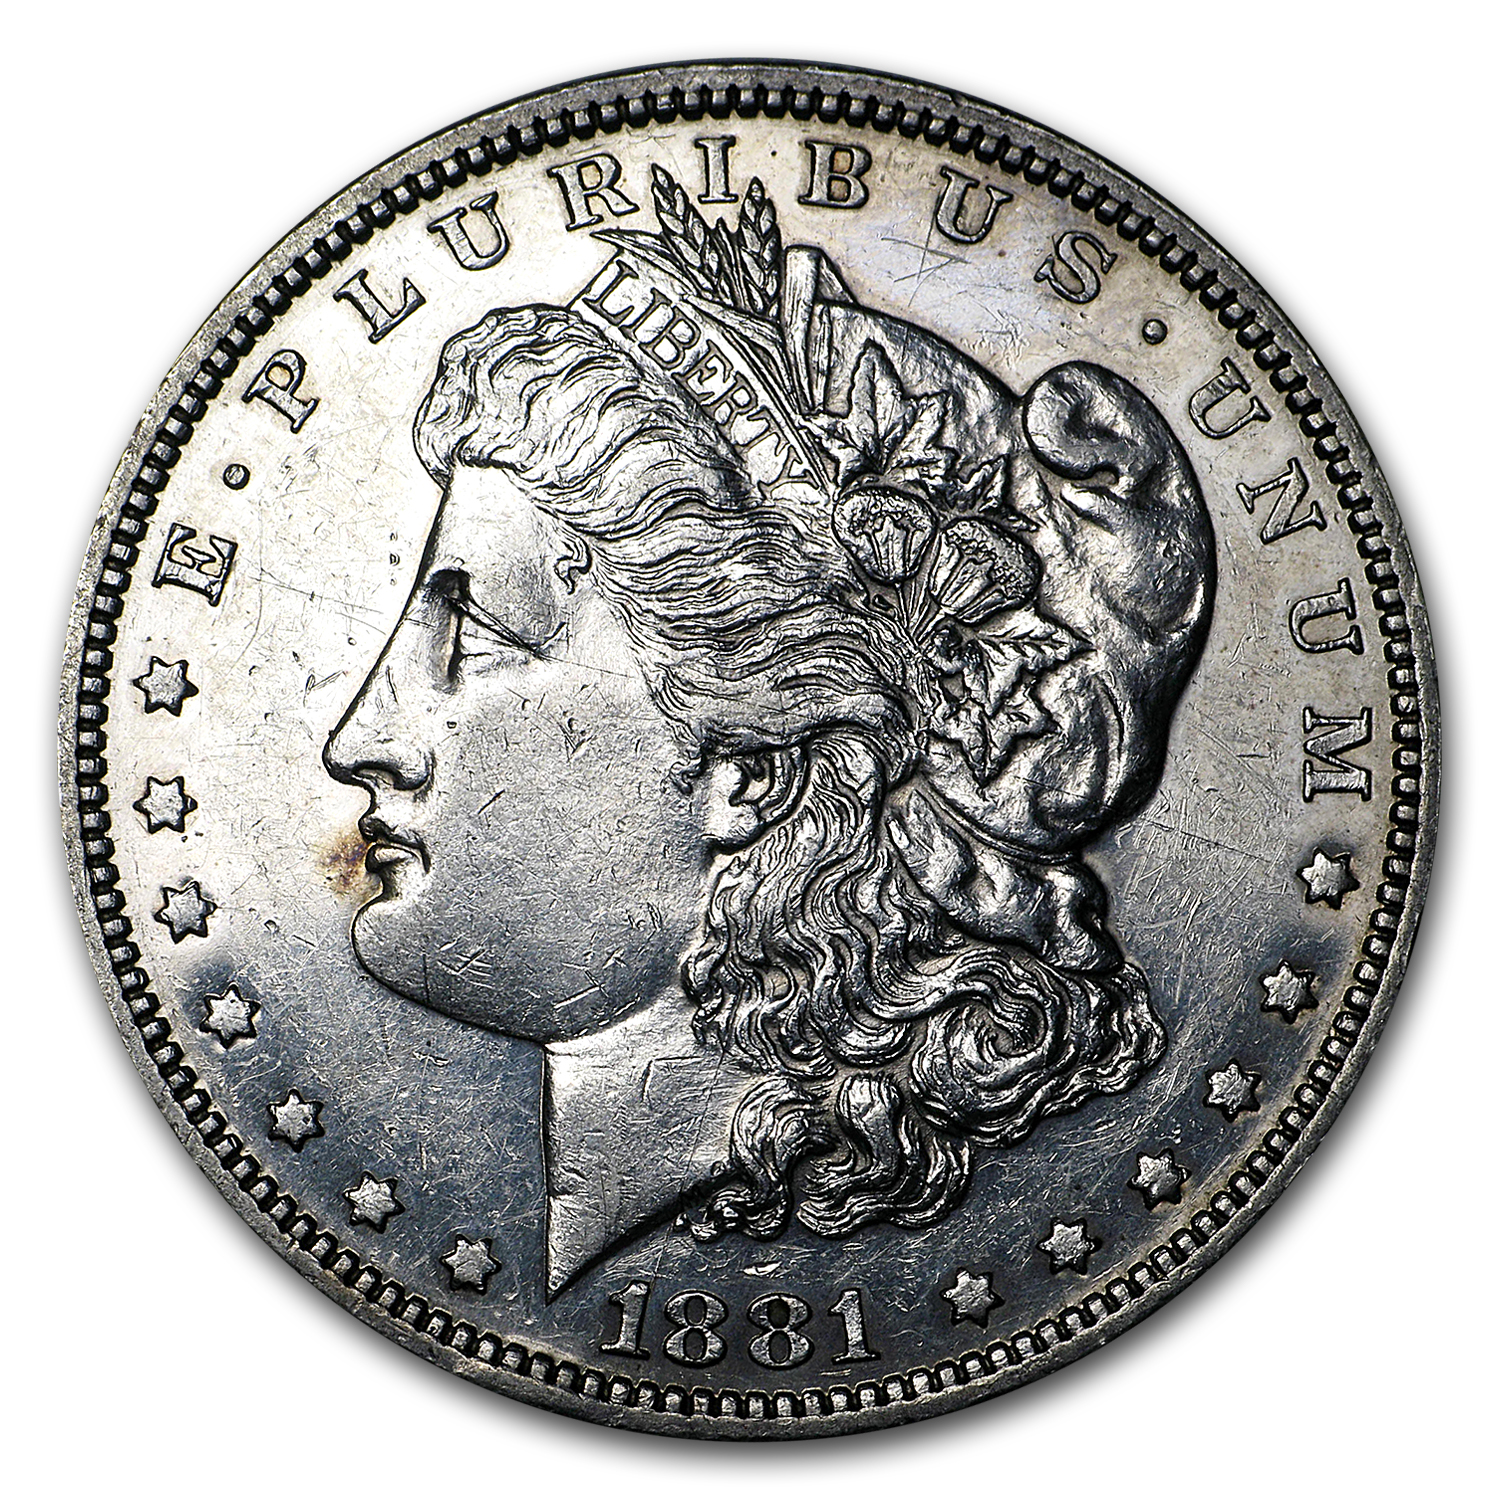 1881 Morgan Dollar Proof (Cleaned)